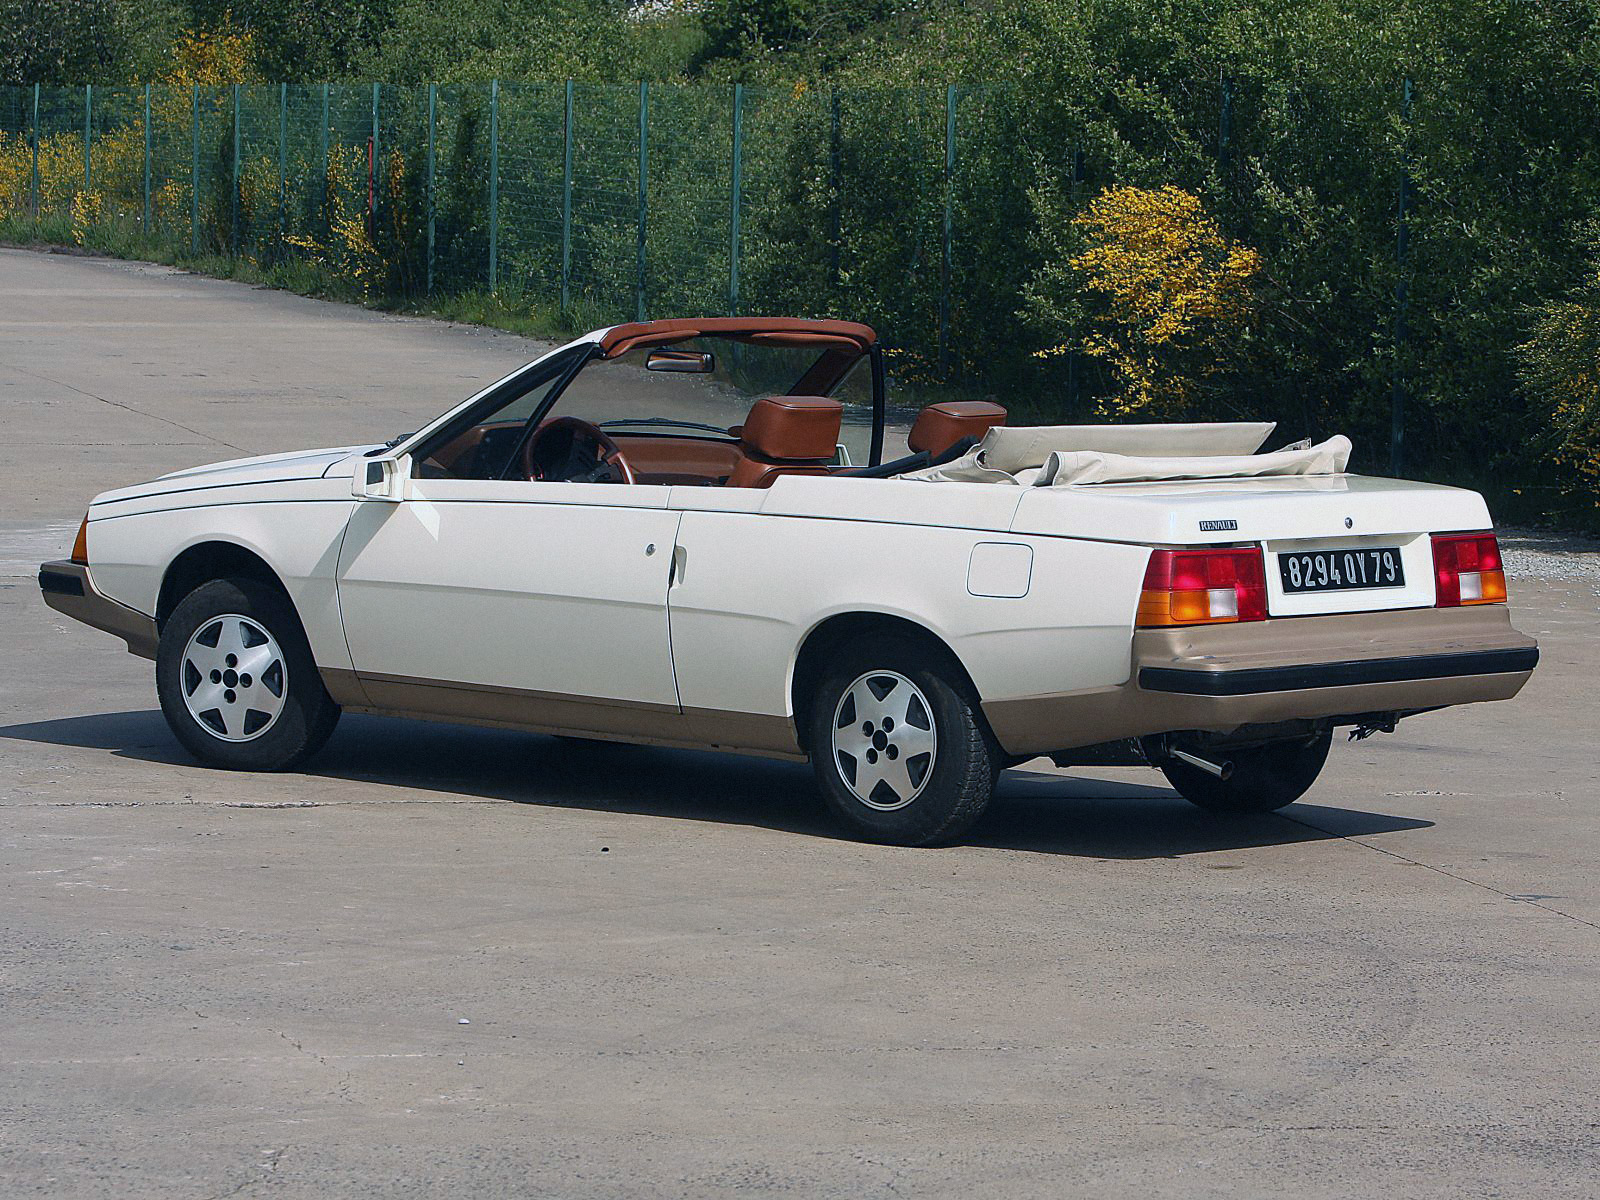 a look at the heuliez built renault fuego turbo convertible ran when parked. Black Bedroom Furniture Sets. Home Design Ideas